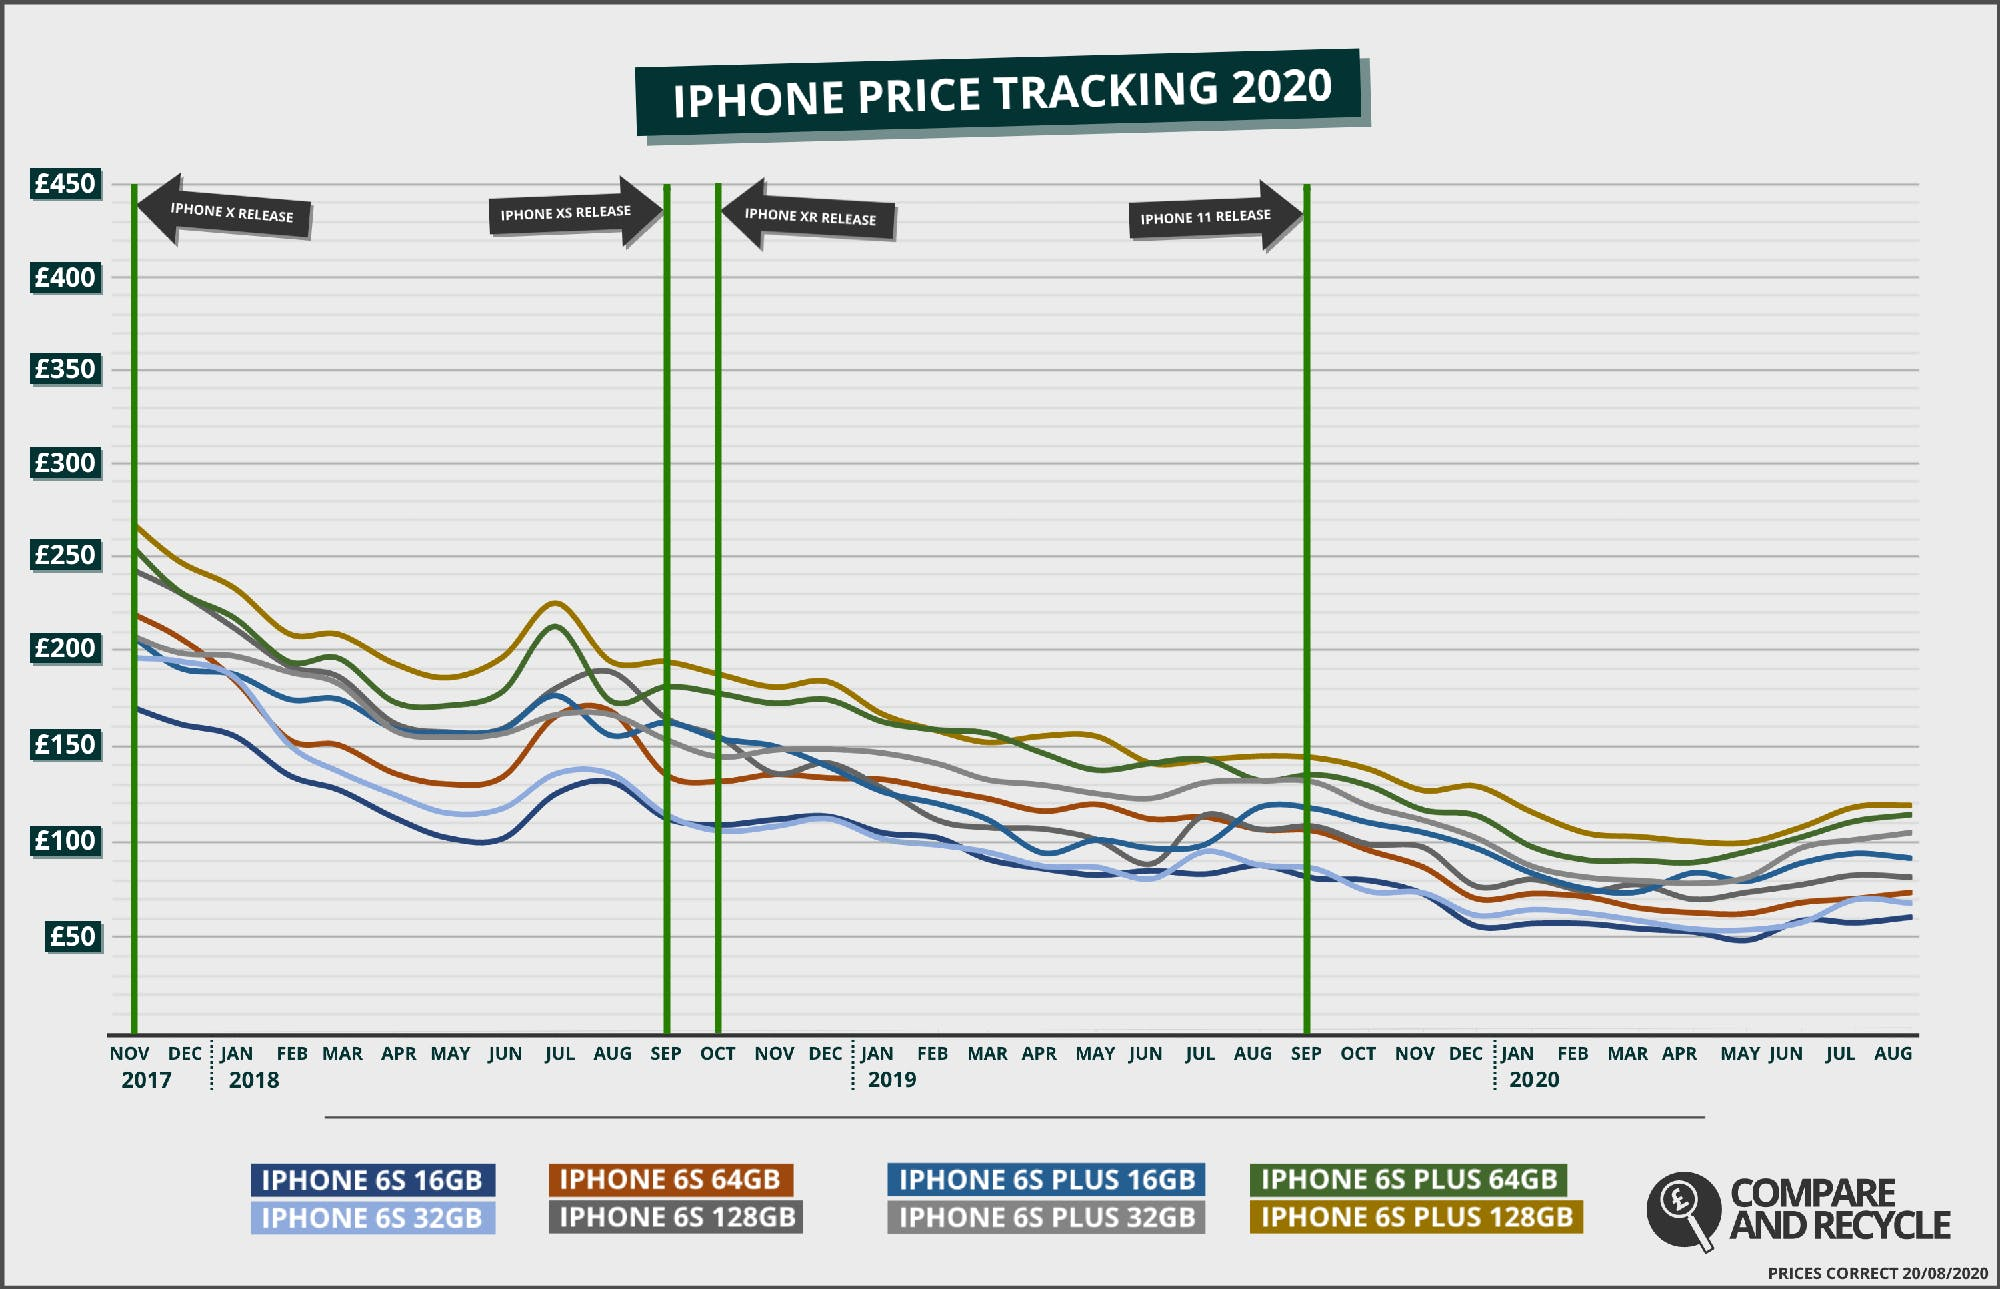 Graph of the iPhone 6s Price History